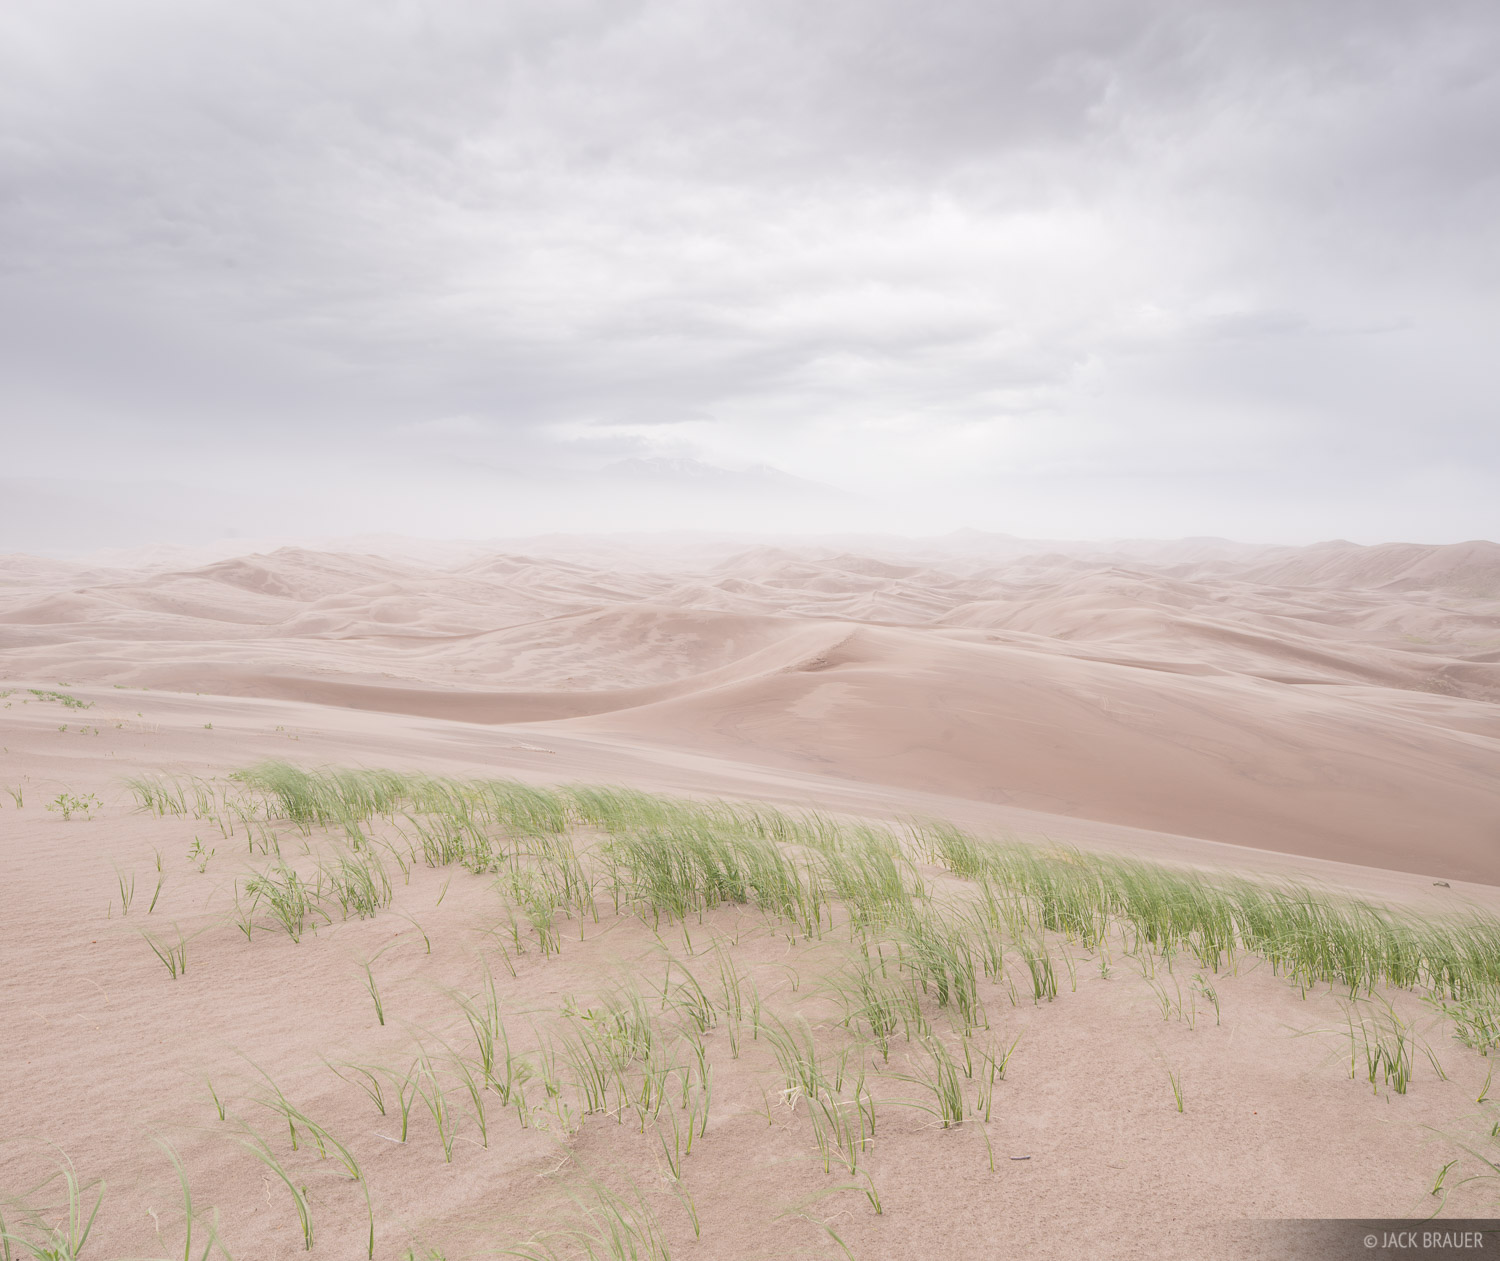 Stormy weather blows the sand around in the Great Sand Dunes.